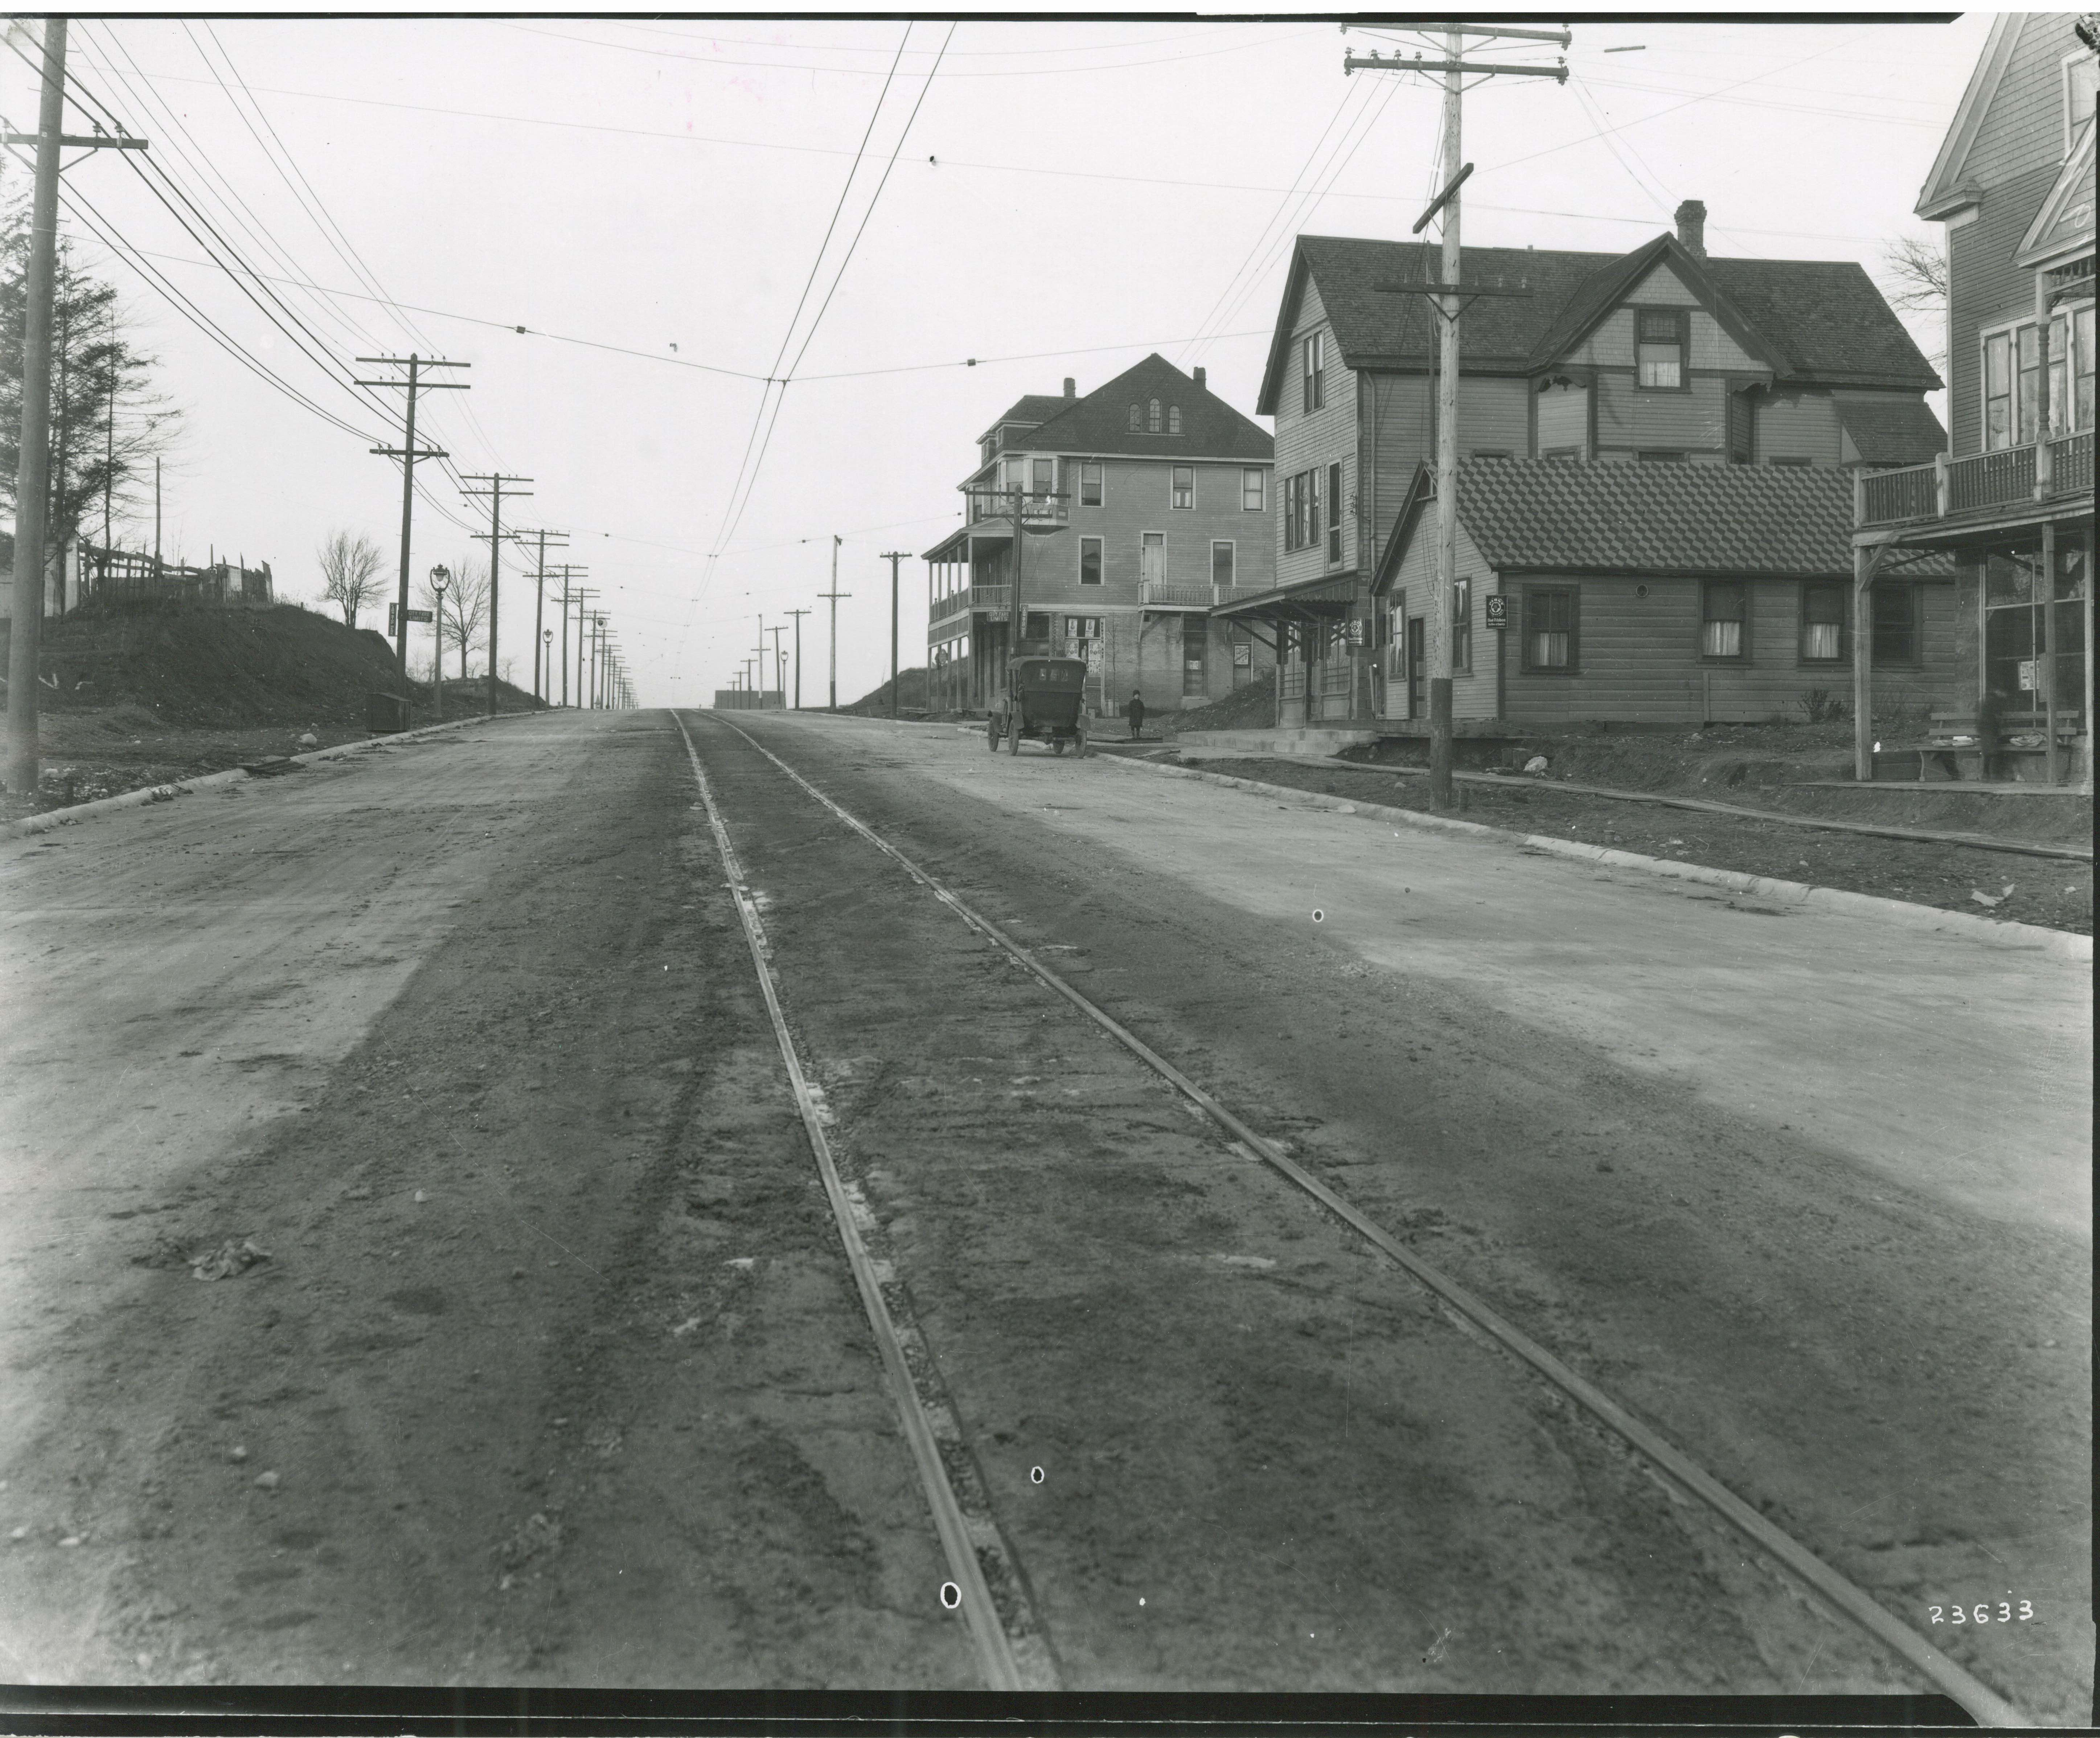 <table class=&quot;lightbox&quot;><tr><td colspan=2 class=&quot;lightbox-title&quot;>Oakland Avenue in Shorewood</td></tr><tr><td colspan=2 class=&quot;lightbox-caption&quot;>The village of Shorewood developed along the Oakland Avenue streetcar line, pictured here at E. Newton Avenue in the early 20th century.</td></tr><tr><td colspan=2 class=&quot;lightbox-spacer&quot;></td></tr><tr class=&quot;lightbox-detail&quot;><td class=&quot;cell-title&quot;>Source: </td><td class=&quot;cell-value&quot;>From the Historic Photo Collection of the Milwaukee Public Library. Reprinted with permission.<br /><a href=&quot;http://content.mpl.org/cdm/singleitem/collection/HstoricPho/id/7133/rec/20&quot; target=&quot;_blank&quot;>Milwaukee Public Library</a></td></tr><tr class=&quot;filler-row&quot;><td colspan=2>&nbsp;</td></tr></table>